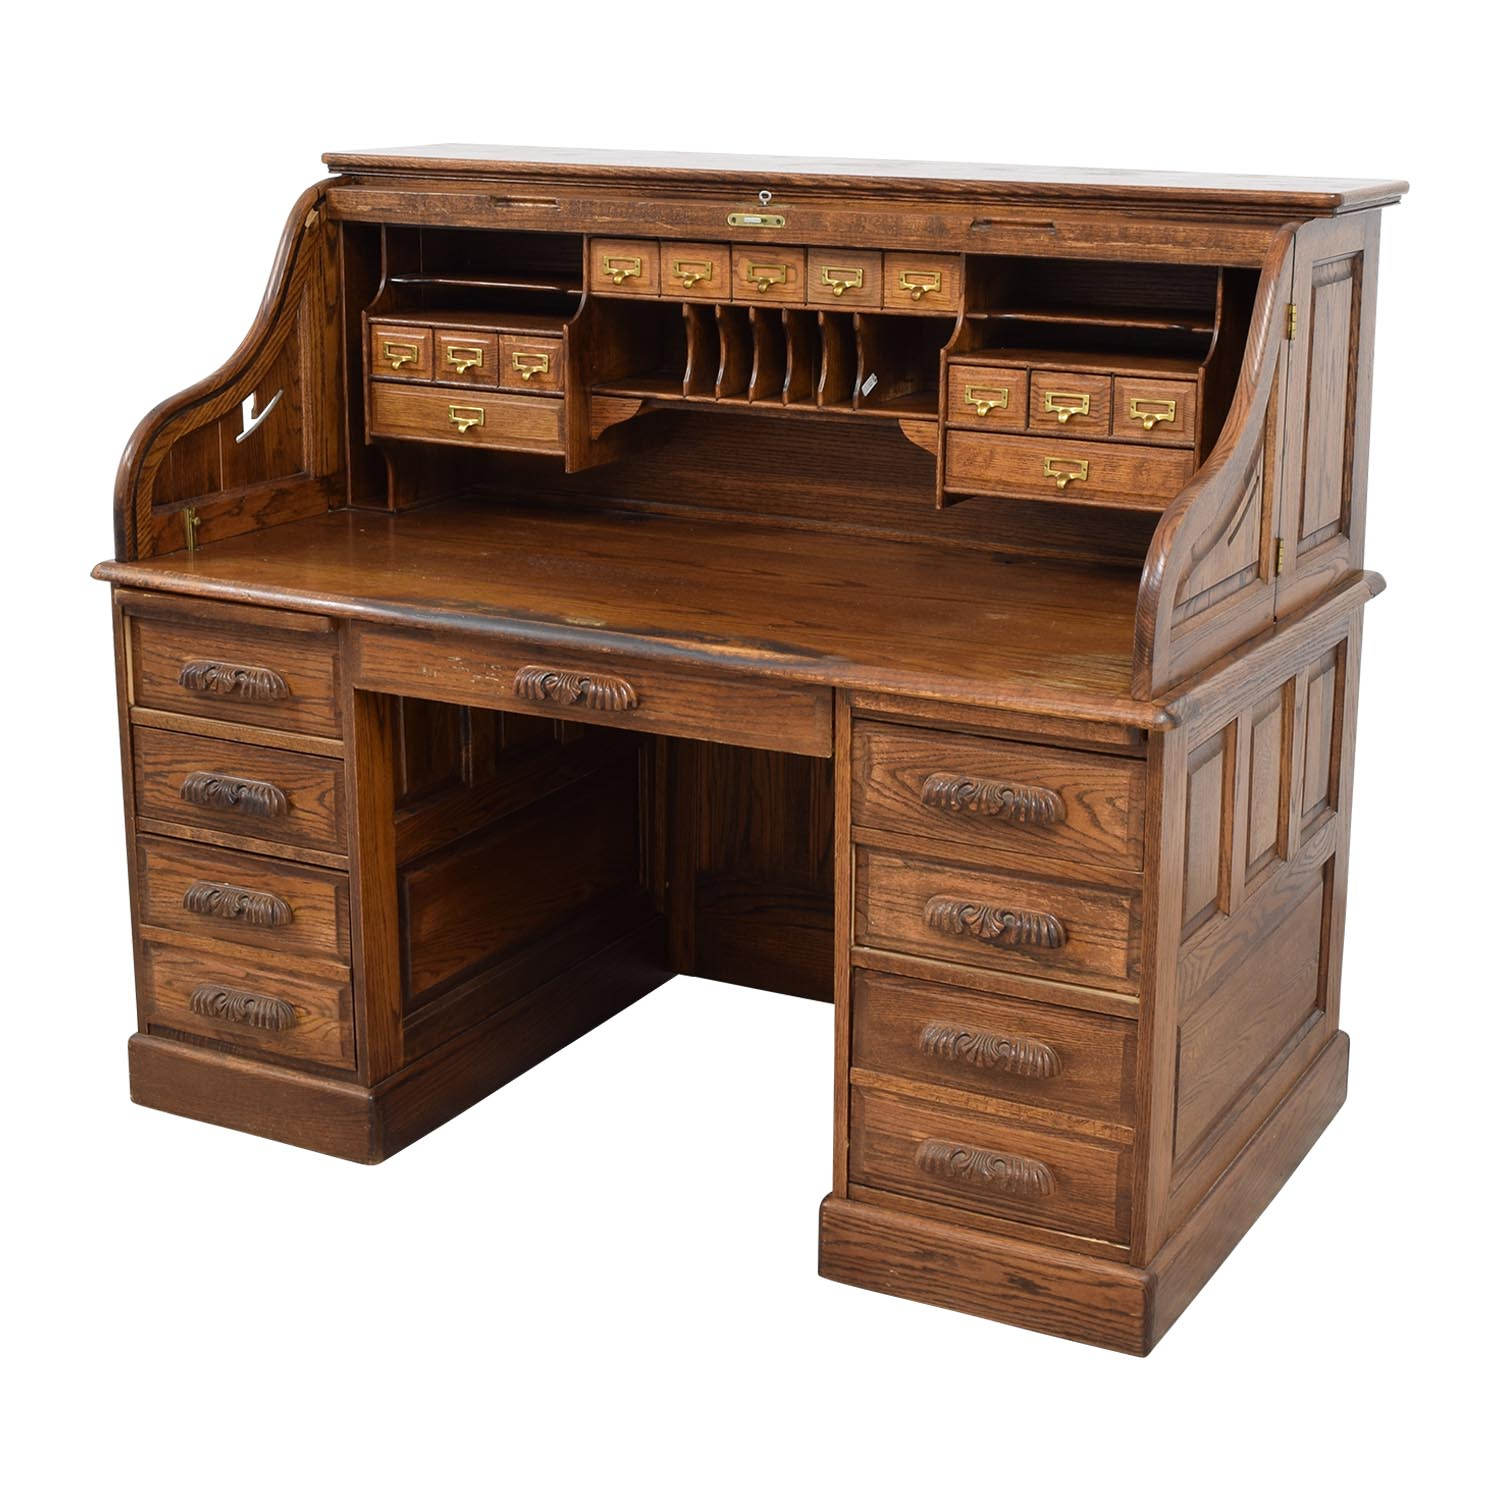 ... Antique Oak Roll-Top Desk sale ... - 84% OFF - Antique Oak Roll-Top Desk / Tables